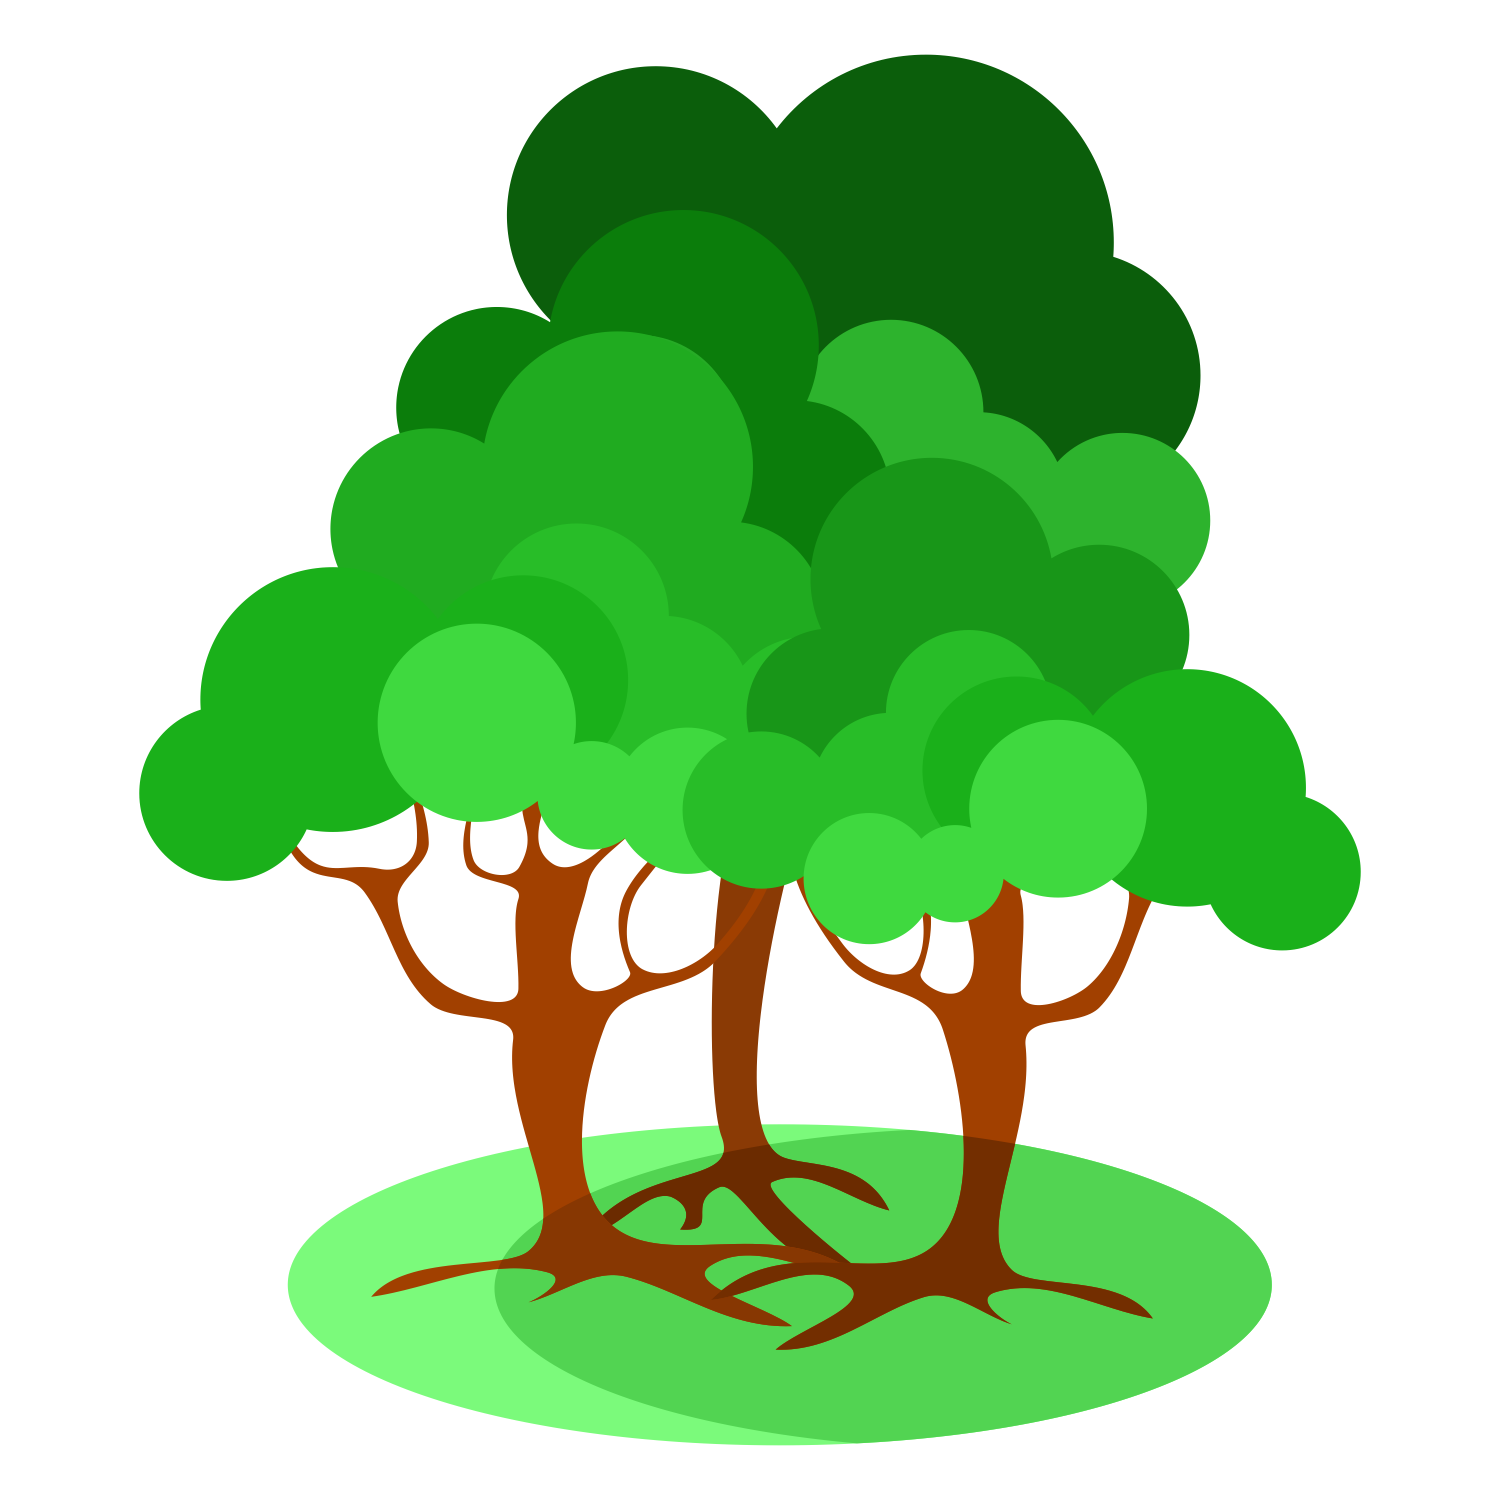 Full size PNG preview: Three trees - Tree PNG Vector